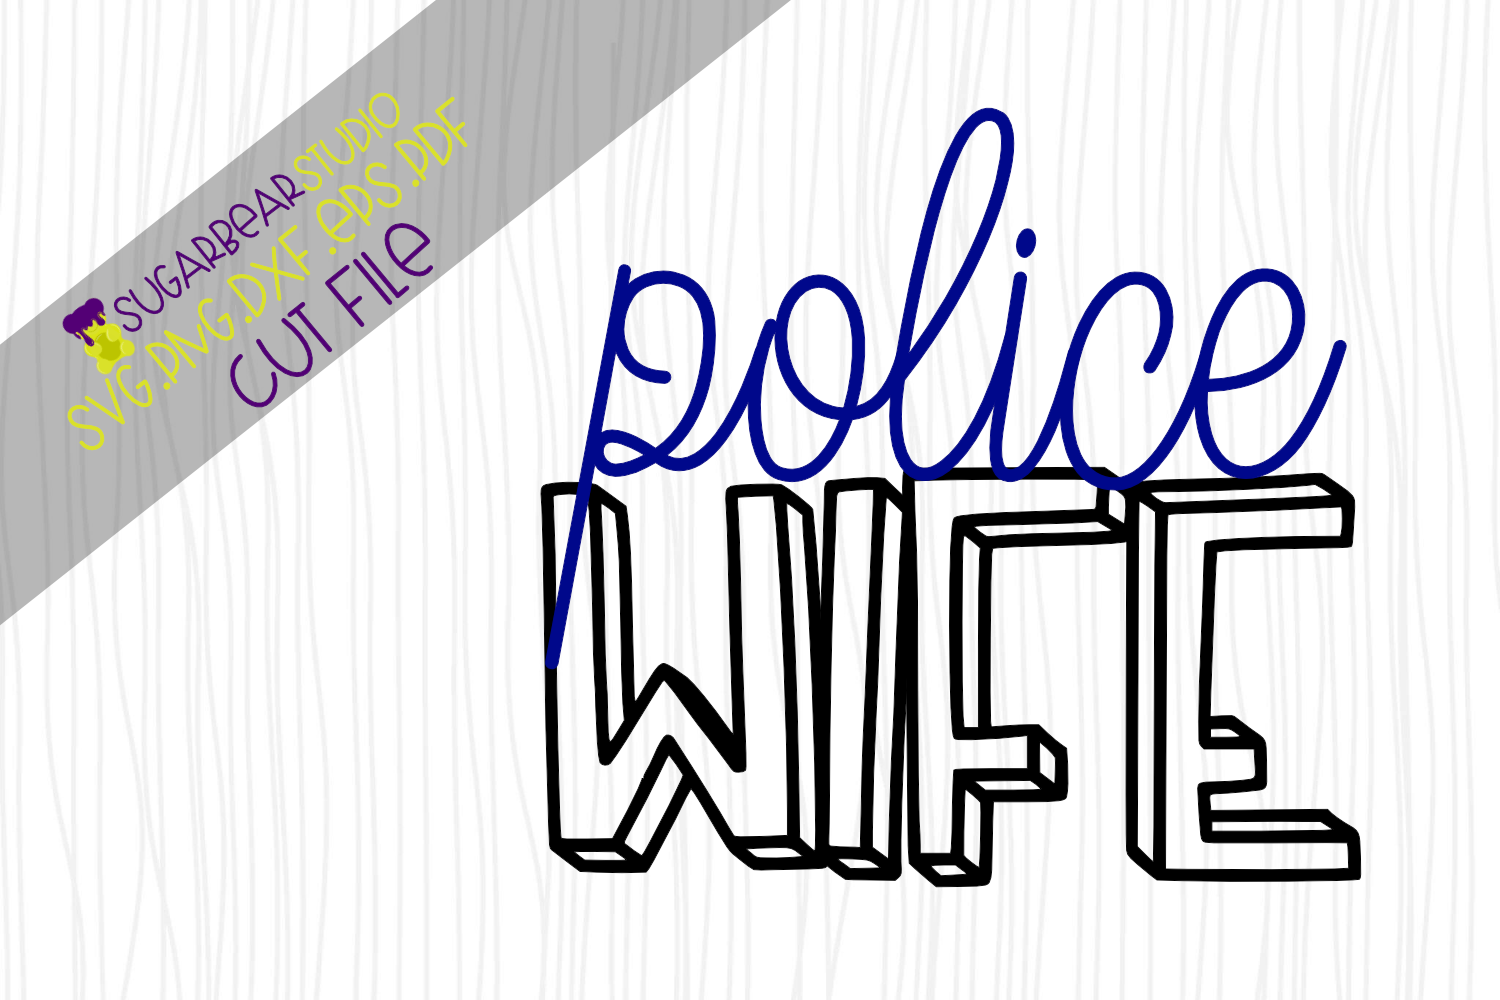 Download Free Police Wife Graphic By Sugarbearstudio Creative Fabrica for Cricut Explore, Silhouette and other cutting machines.